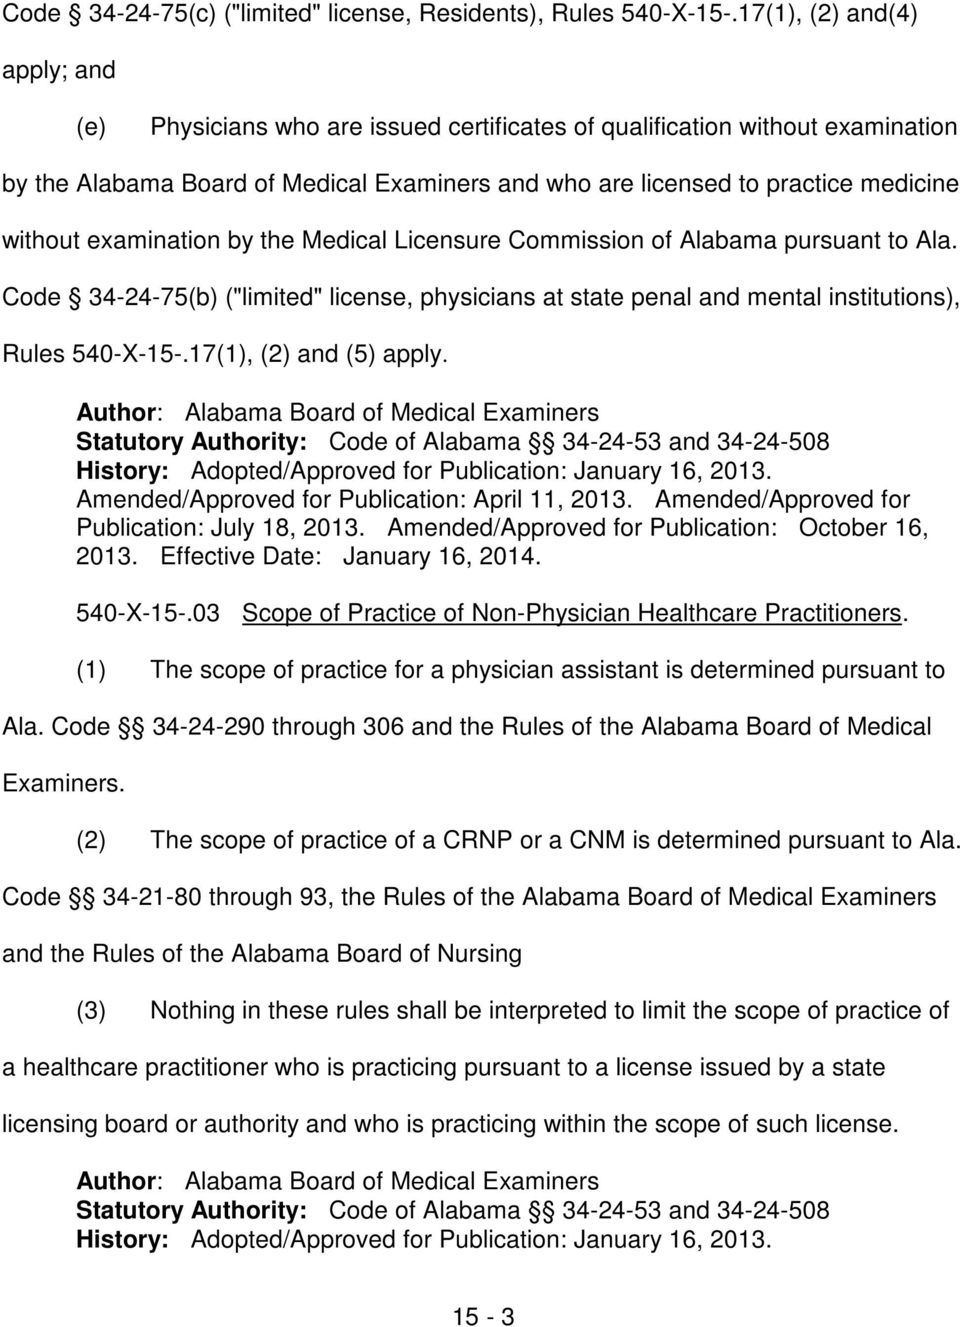 "without examination by the Medical Licensure Commission of Alabama pursuant to Ala. Code 34-24-75 (""limited"" license, physicians at state penal and mental institutions), Rules 540-X-15-."